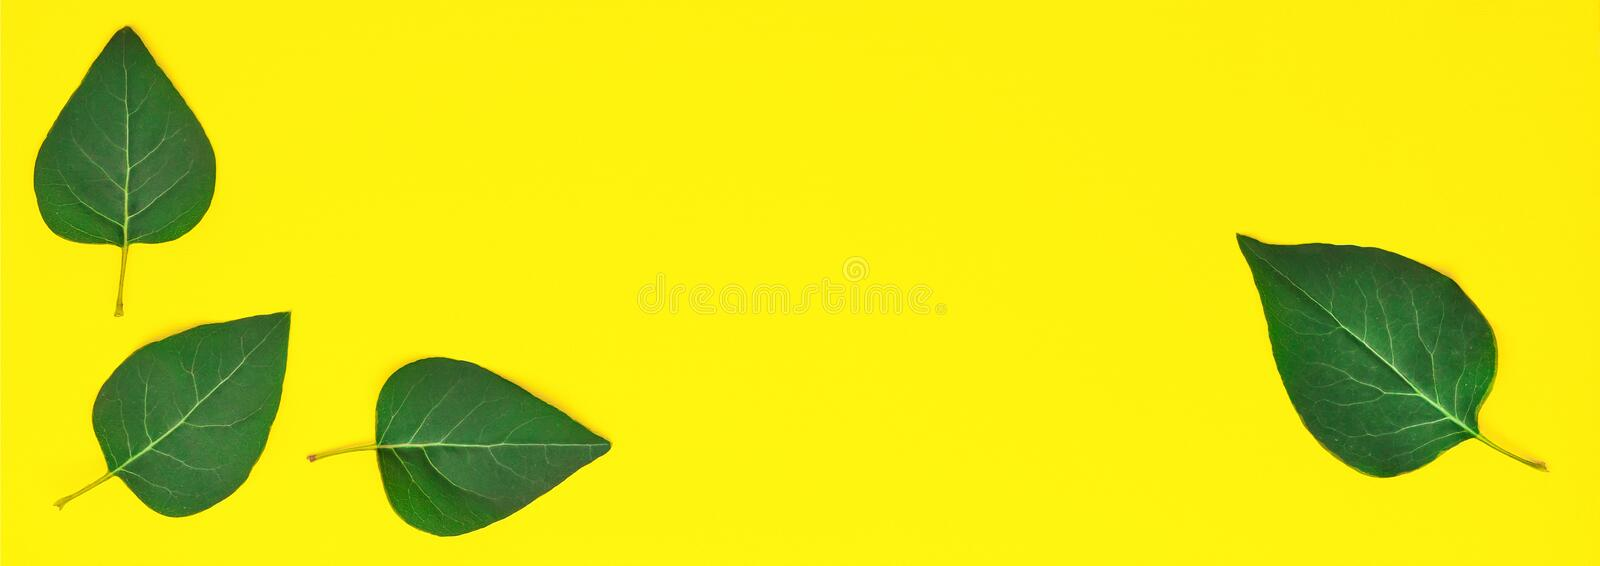 Style minimalism. Green leaves on a yellow background. stock images